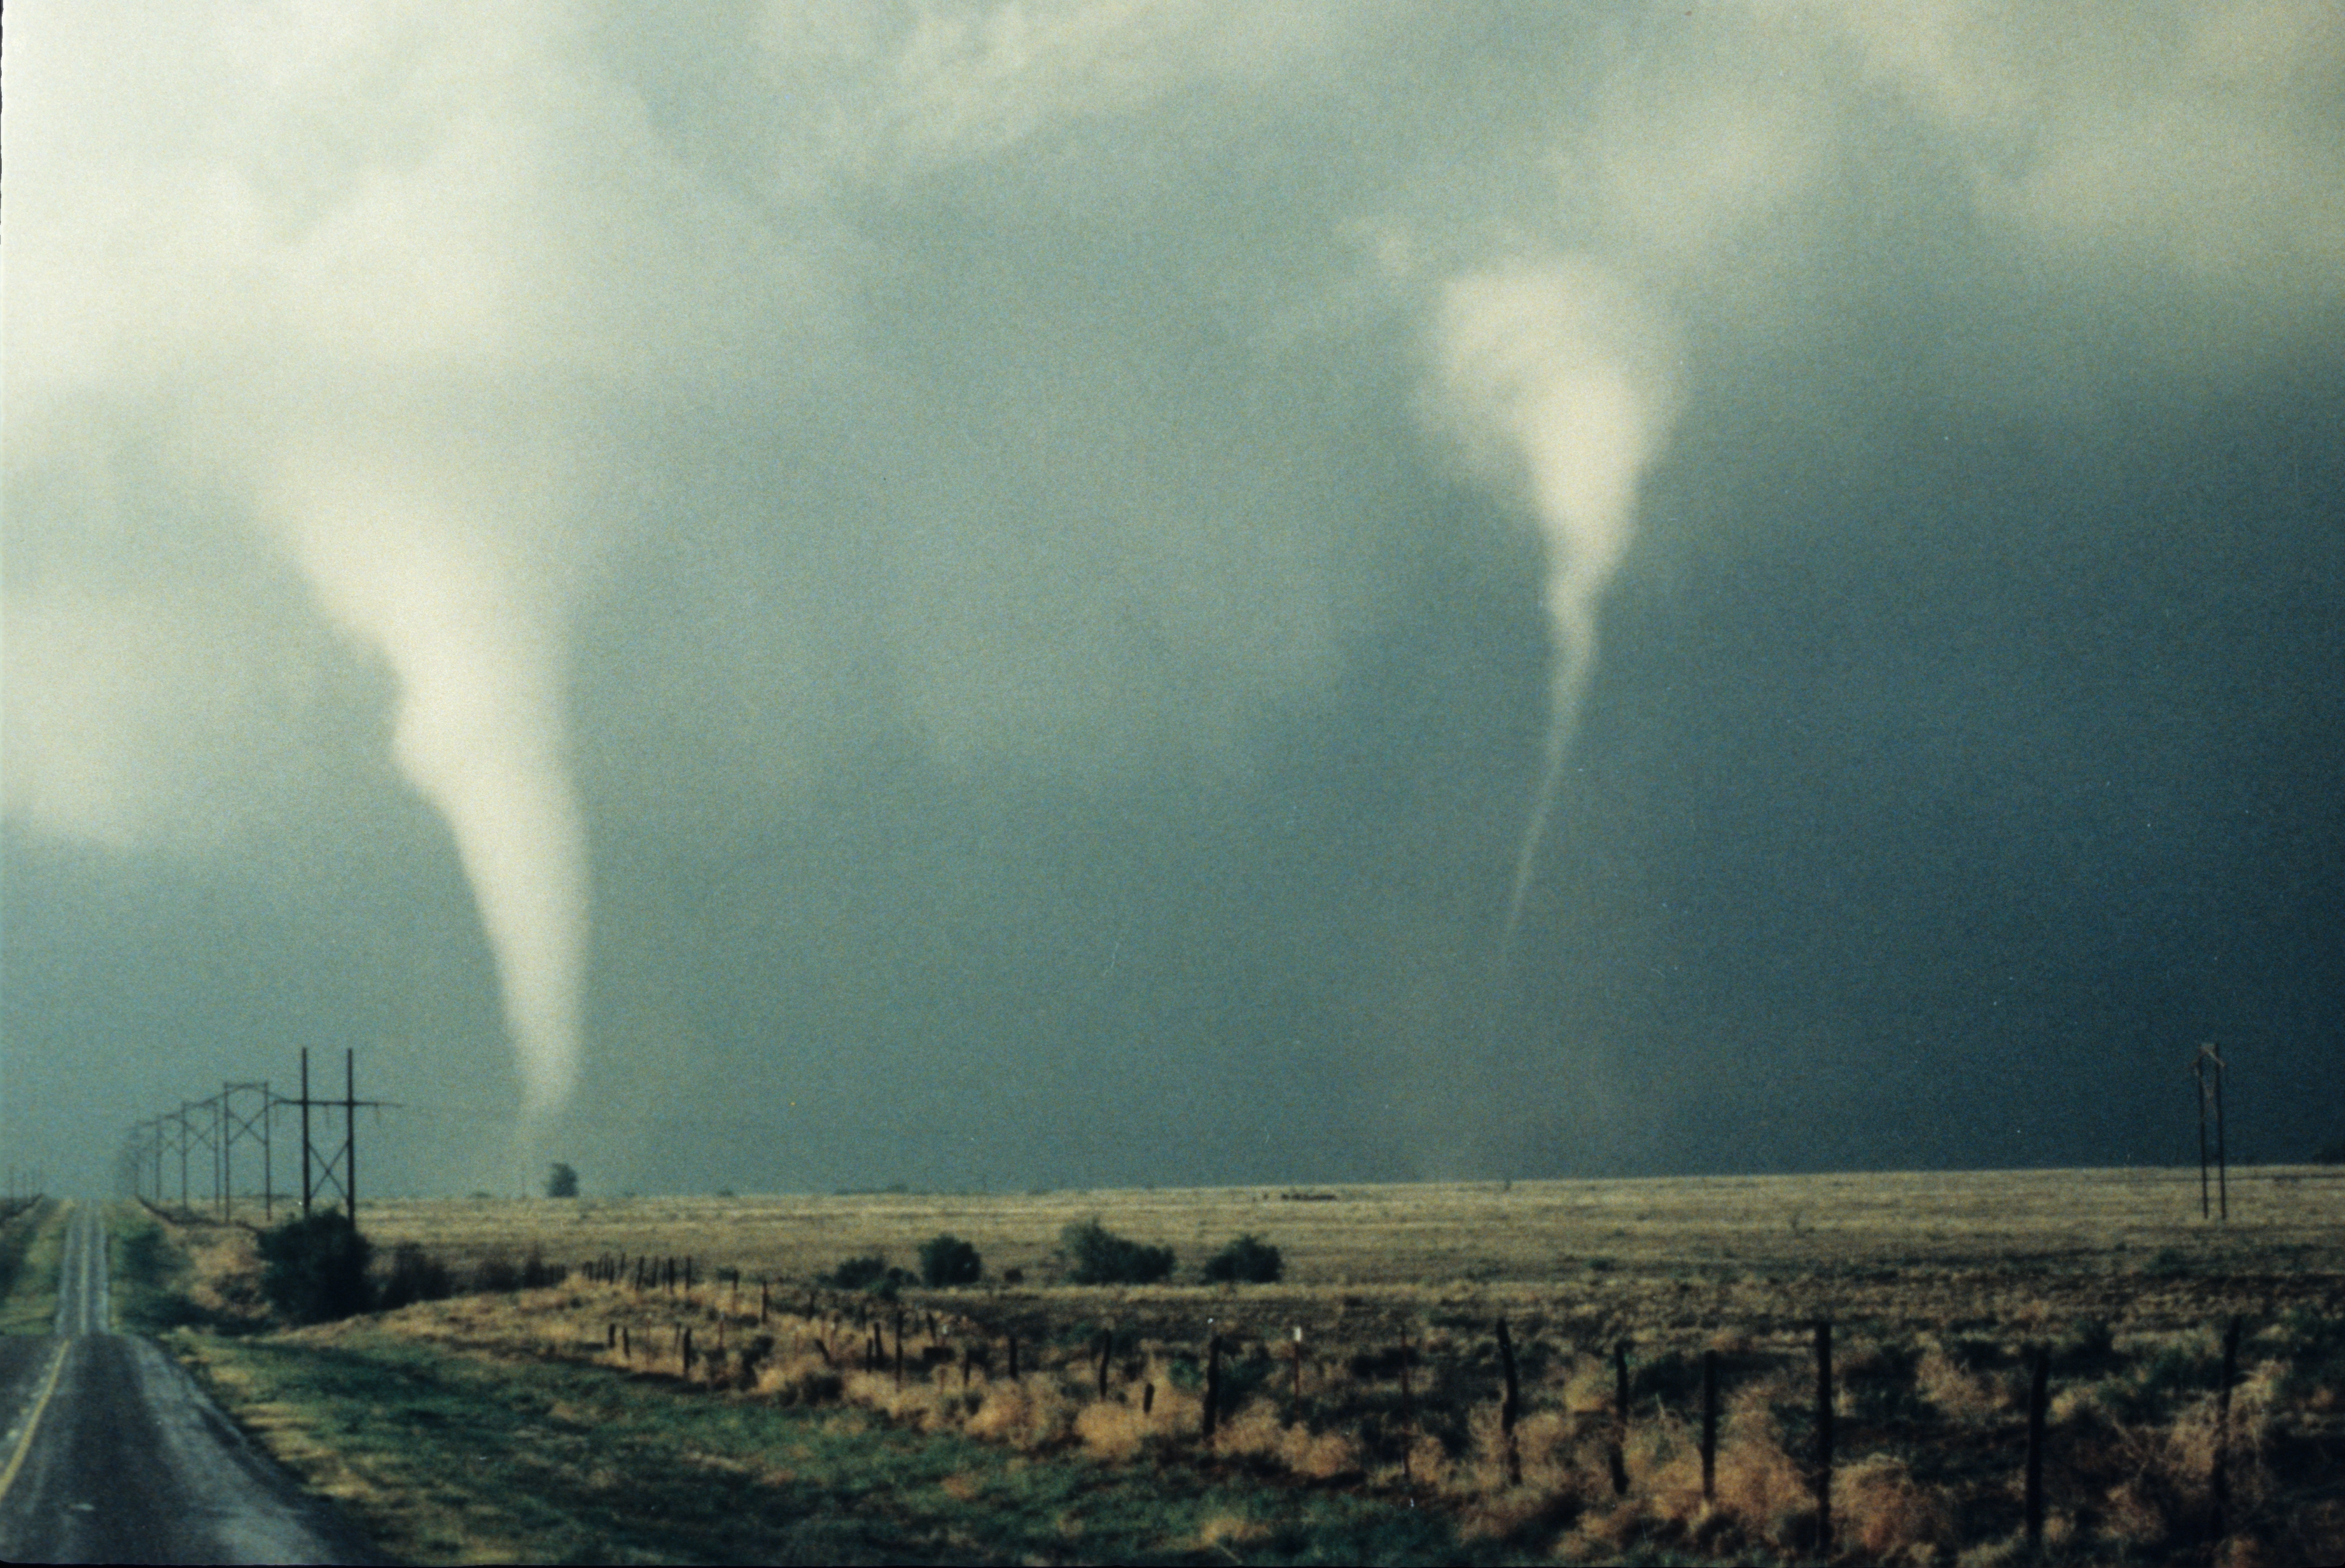 File:NOAA two TORNADOES.jpg - Wikipedia, the free encyclopedia